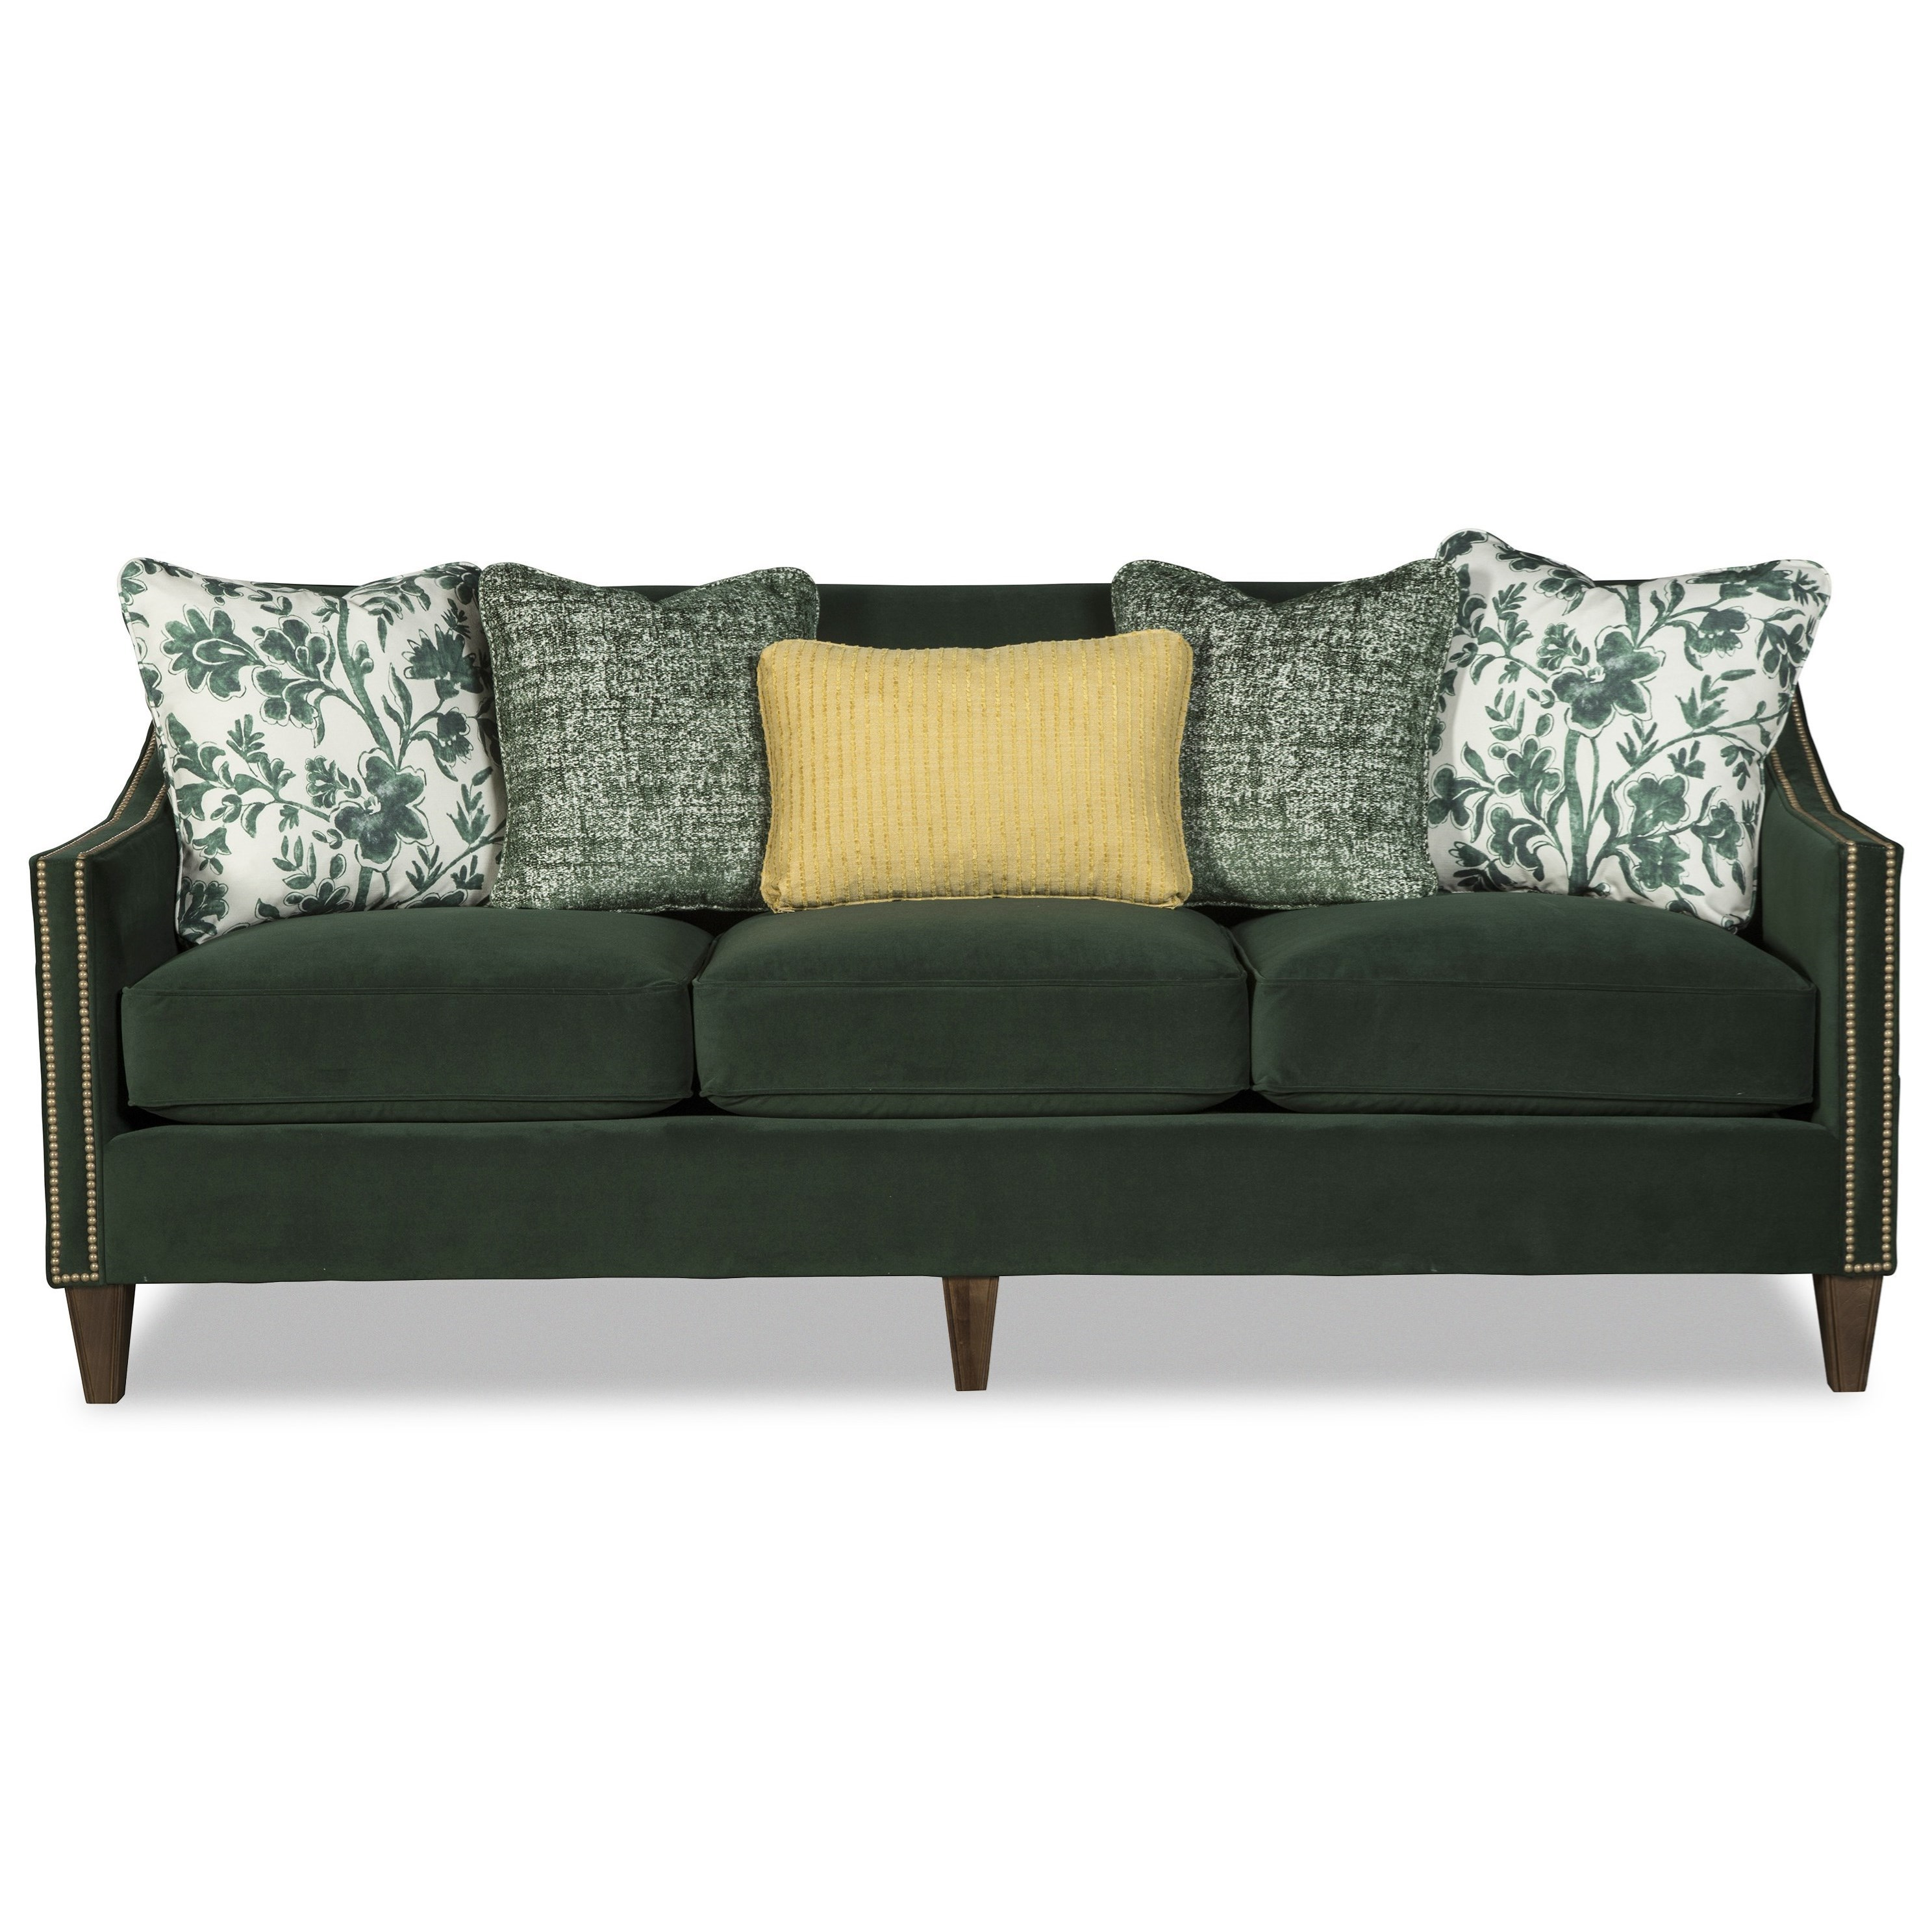 Contemporary Sofa with Tight Back, Toss Pillows, and Nailhead Studs